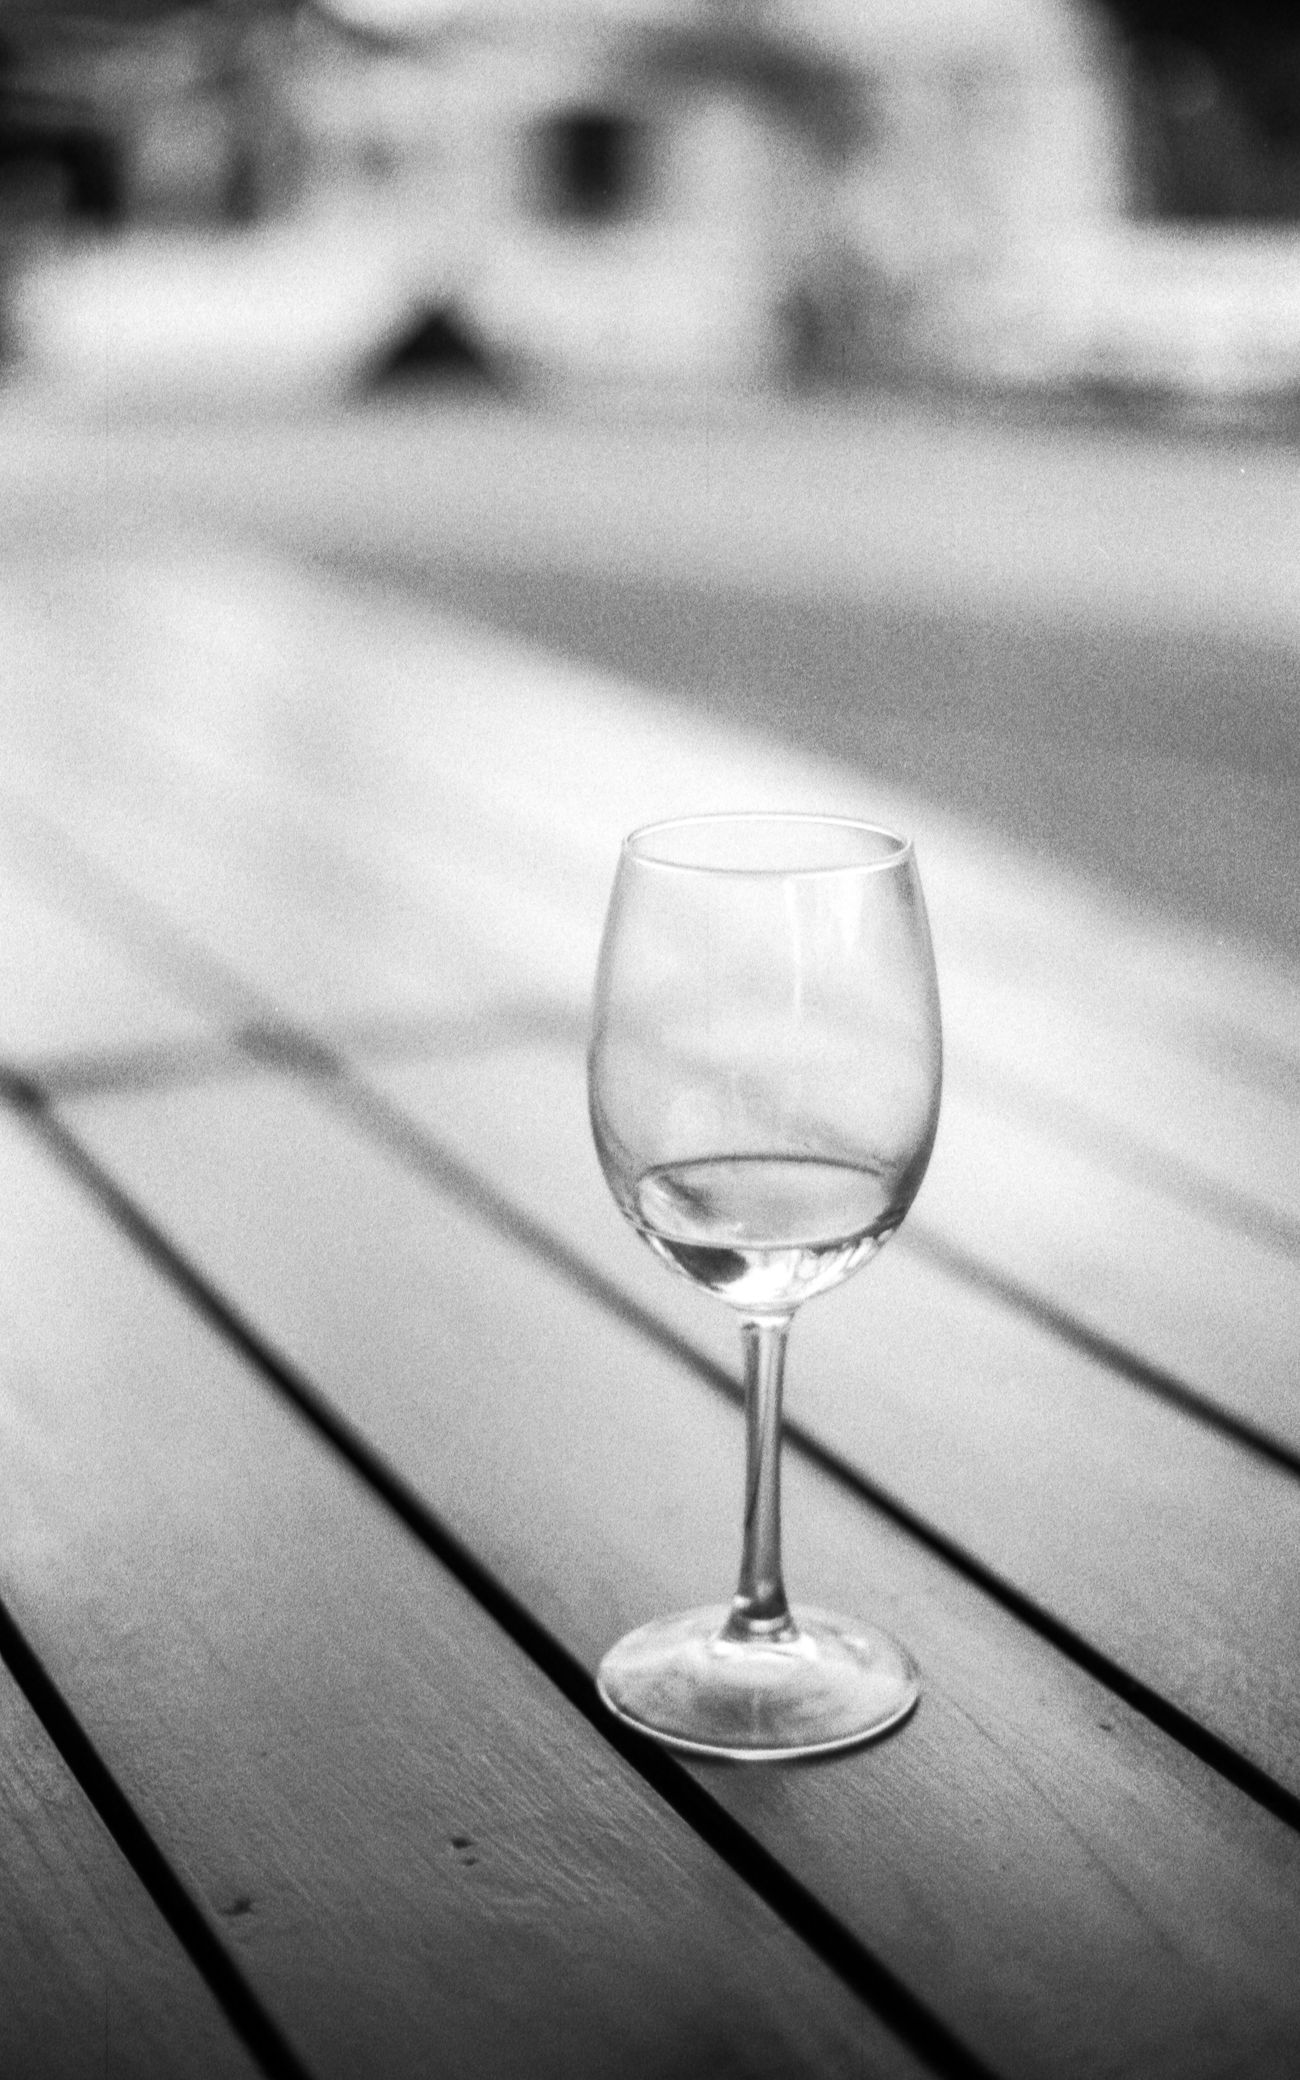 Monochrome Photography the simple things in life. A day well spent. Shot on Fomapan100 Film........... Anolog Photography Black & White Capture The Moment Abstract Bwfilm Bw